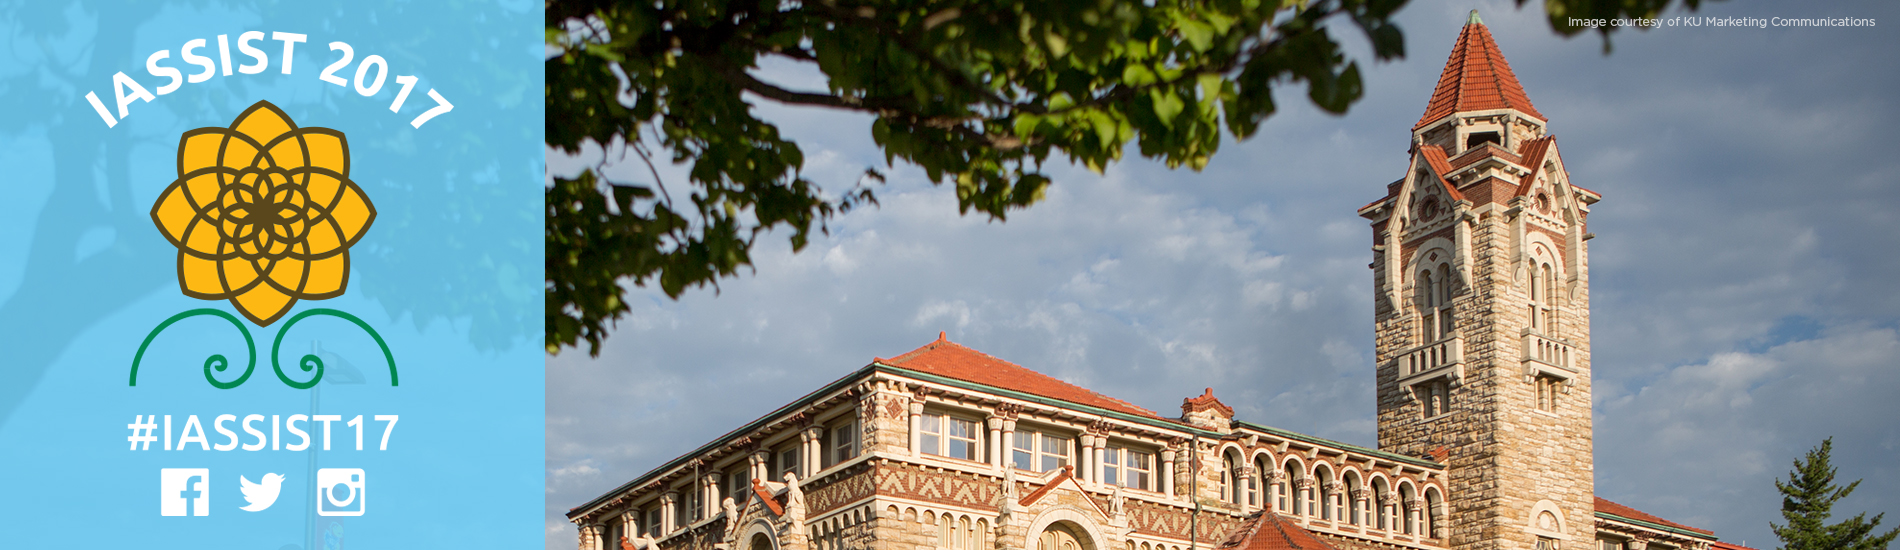 Dyche Hall, University of Kansas Campus